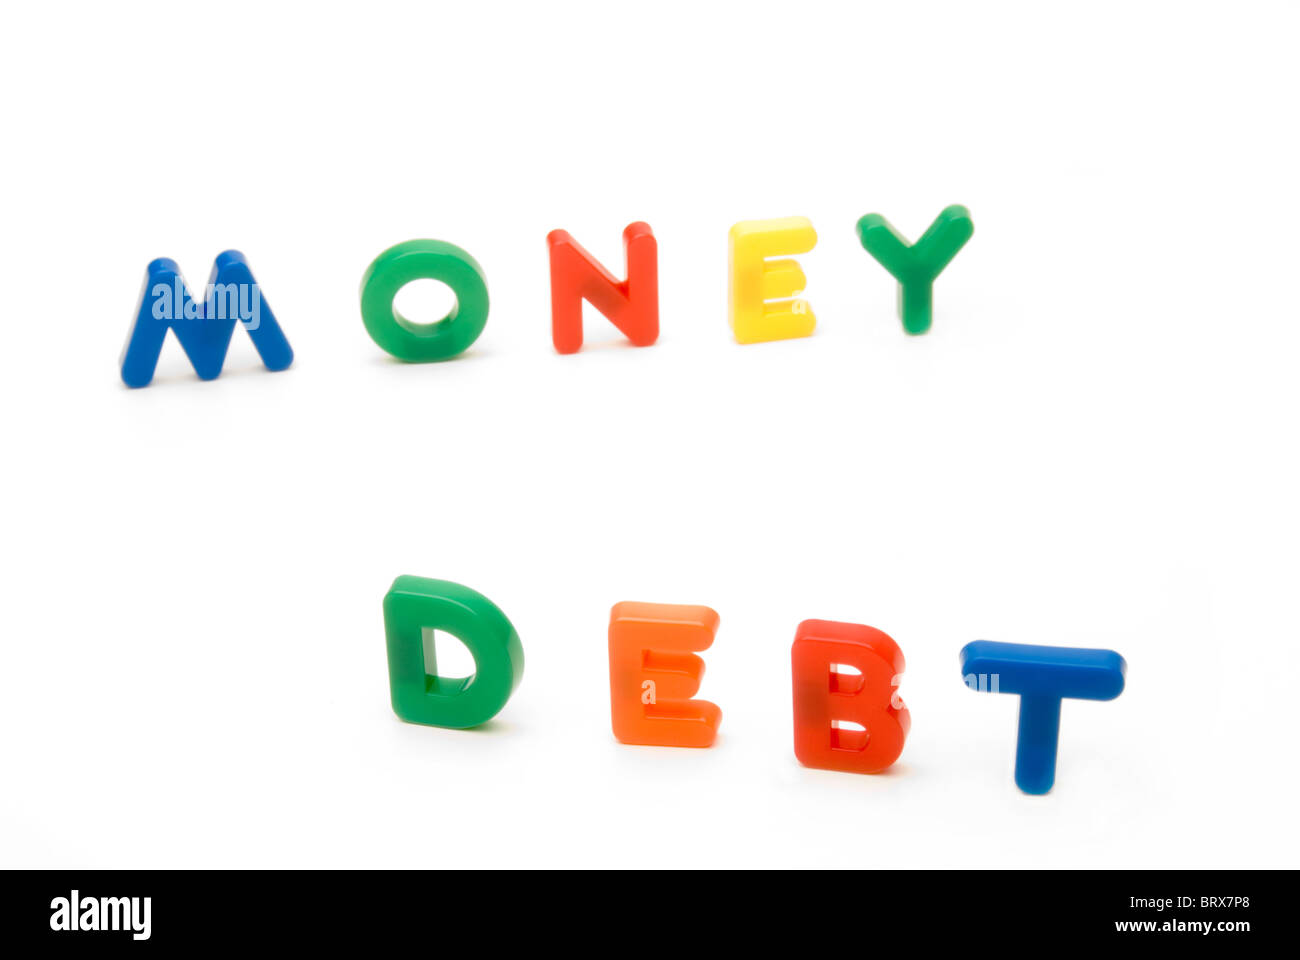 Conceptual image - Children's play letters spelling the words Money and Debt Stock Photo